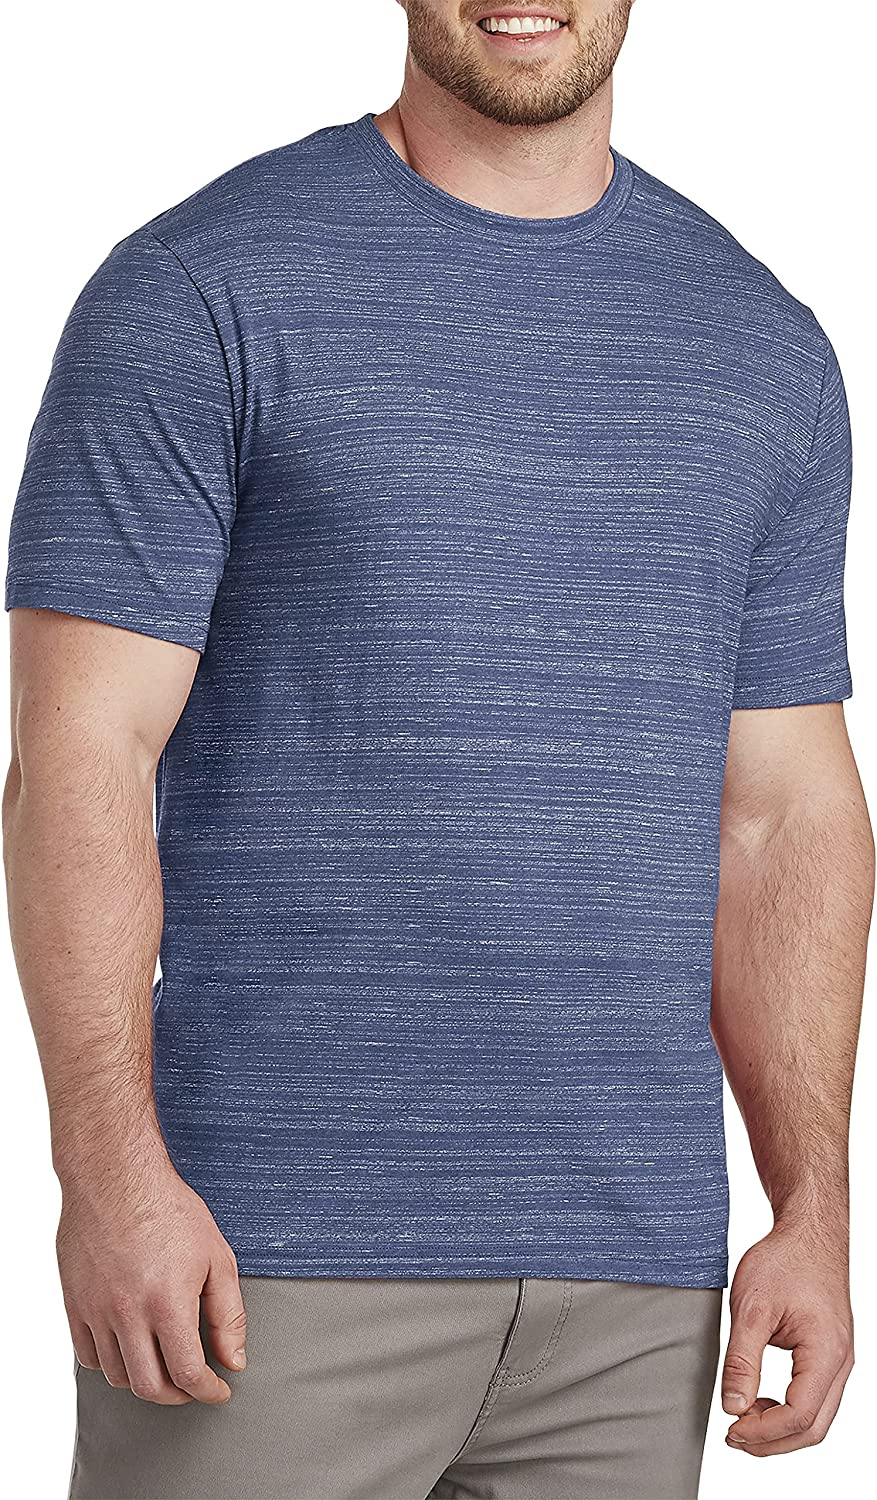 Harbor Bay by DXL Big and Tall Space-Dyed T-Shirt